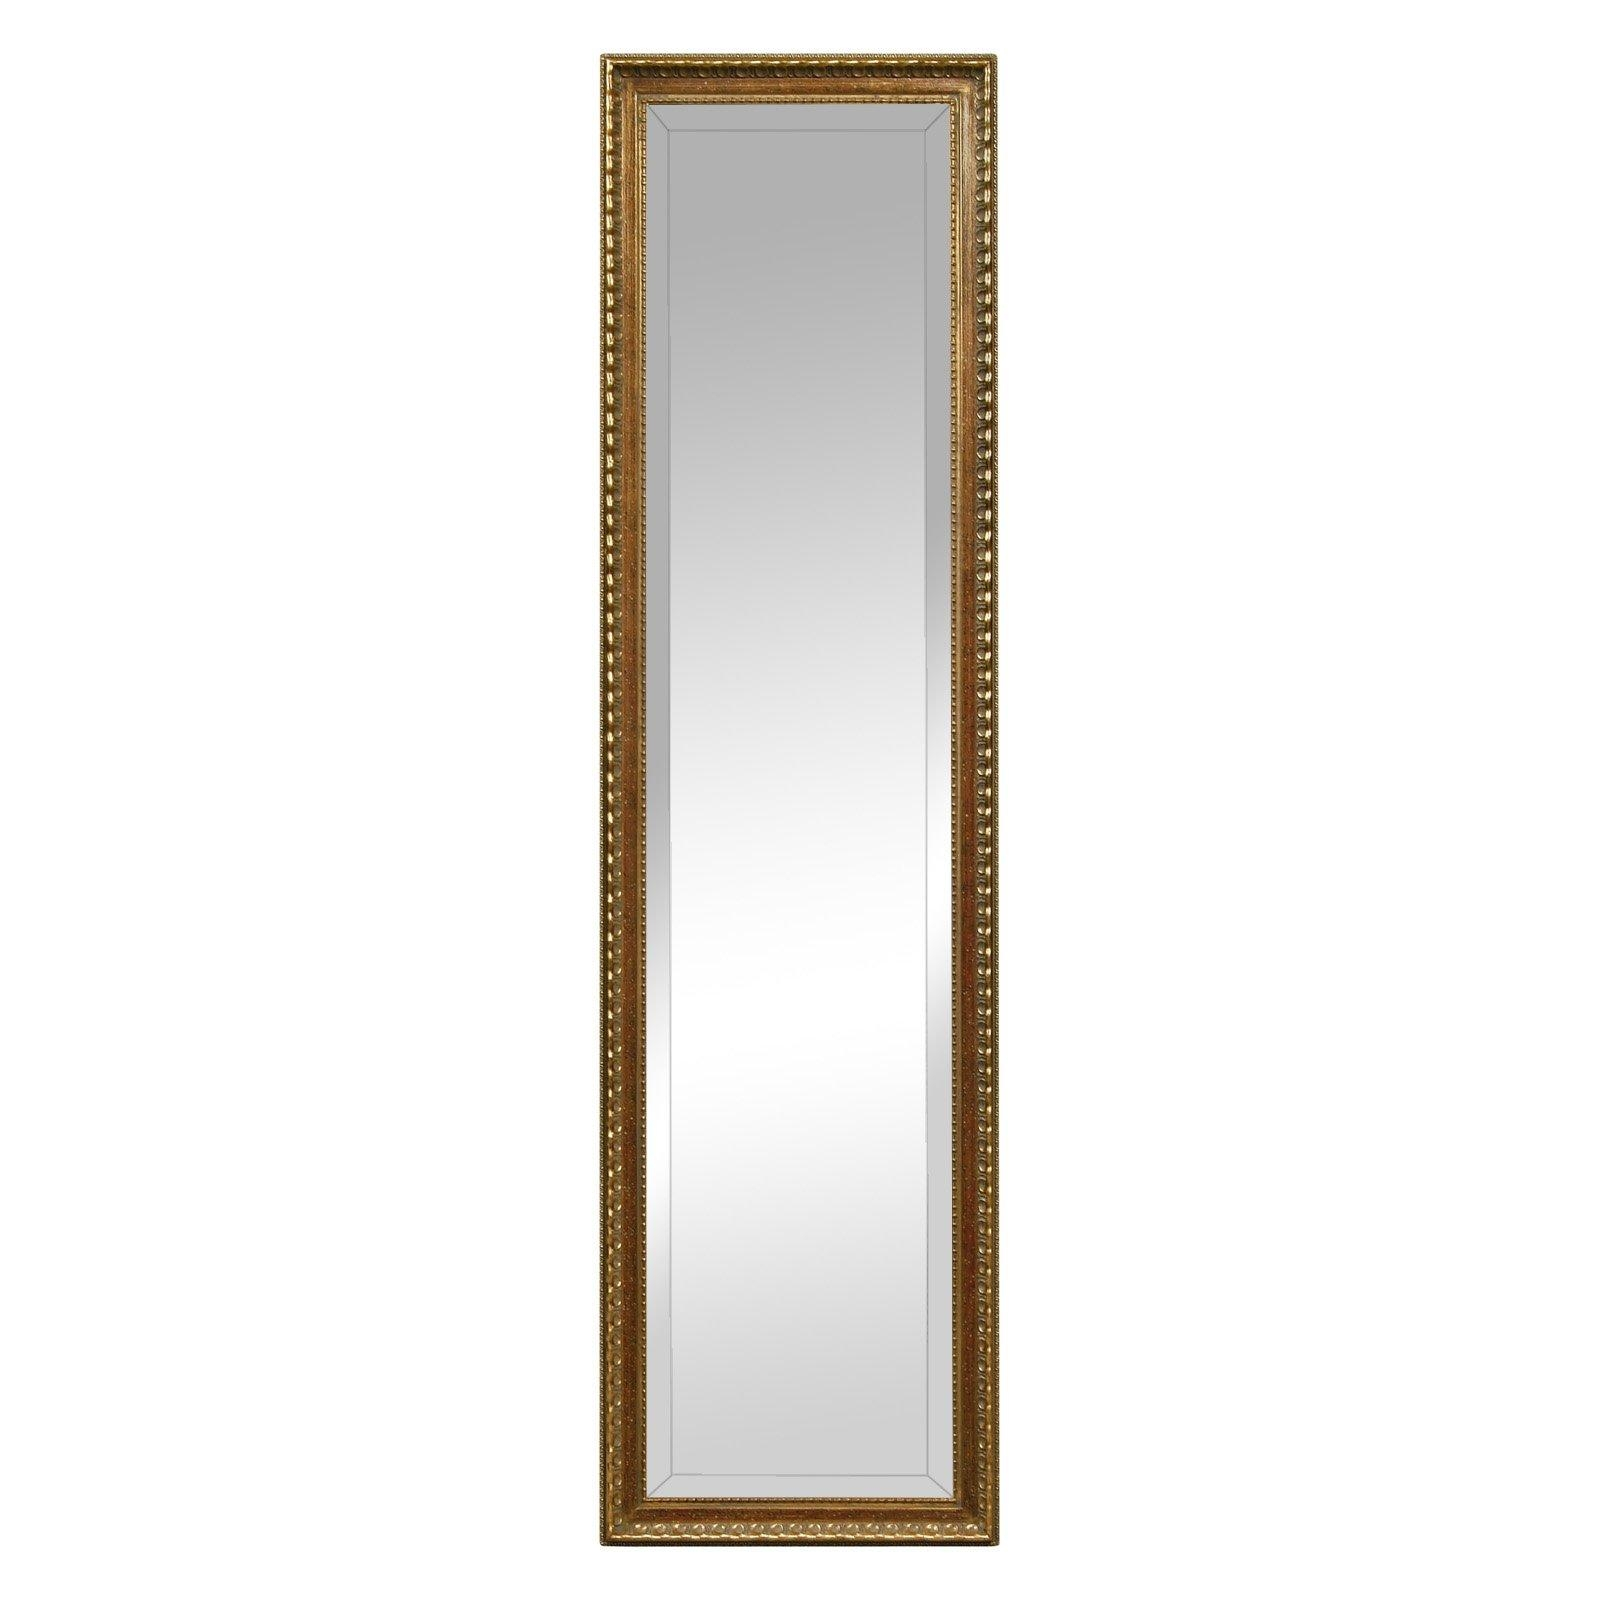 Silver & Gold Full Length Cheval Floor Mirror – 18W X 64H In Intended For Gold Full Length Mirror (Image 19 of 20)